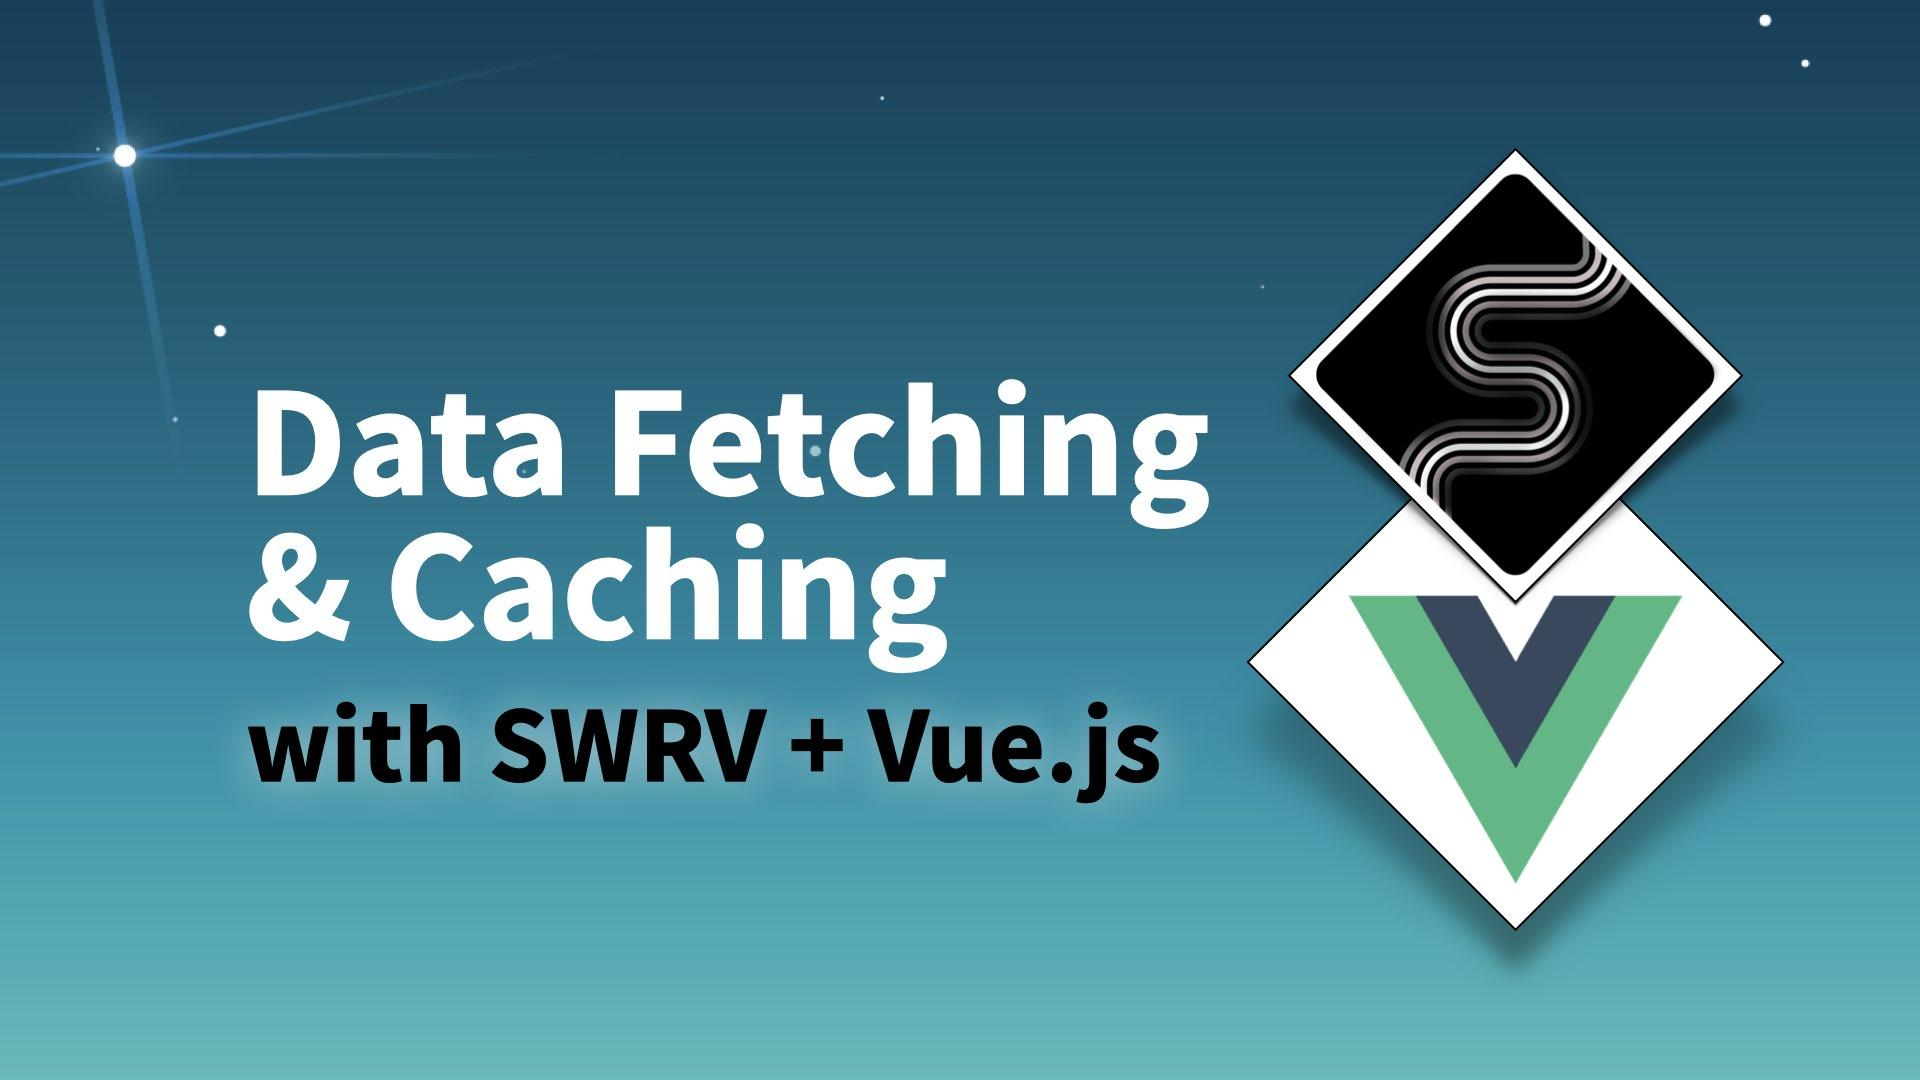 Data fetching and caching with SWR and Vue.js